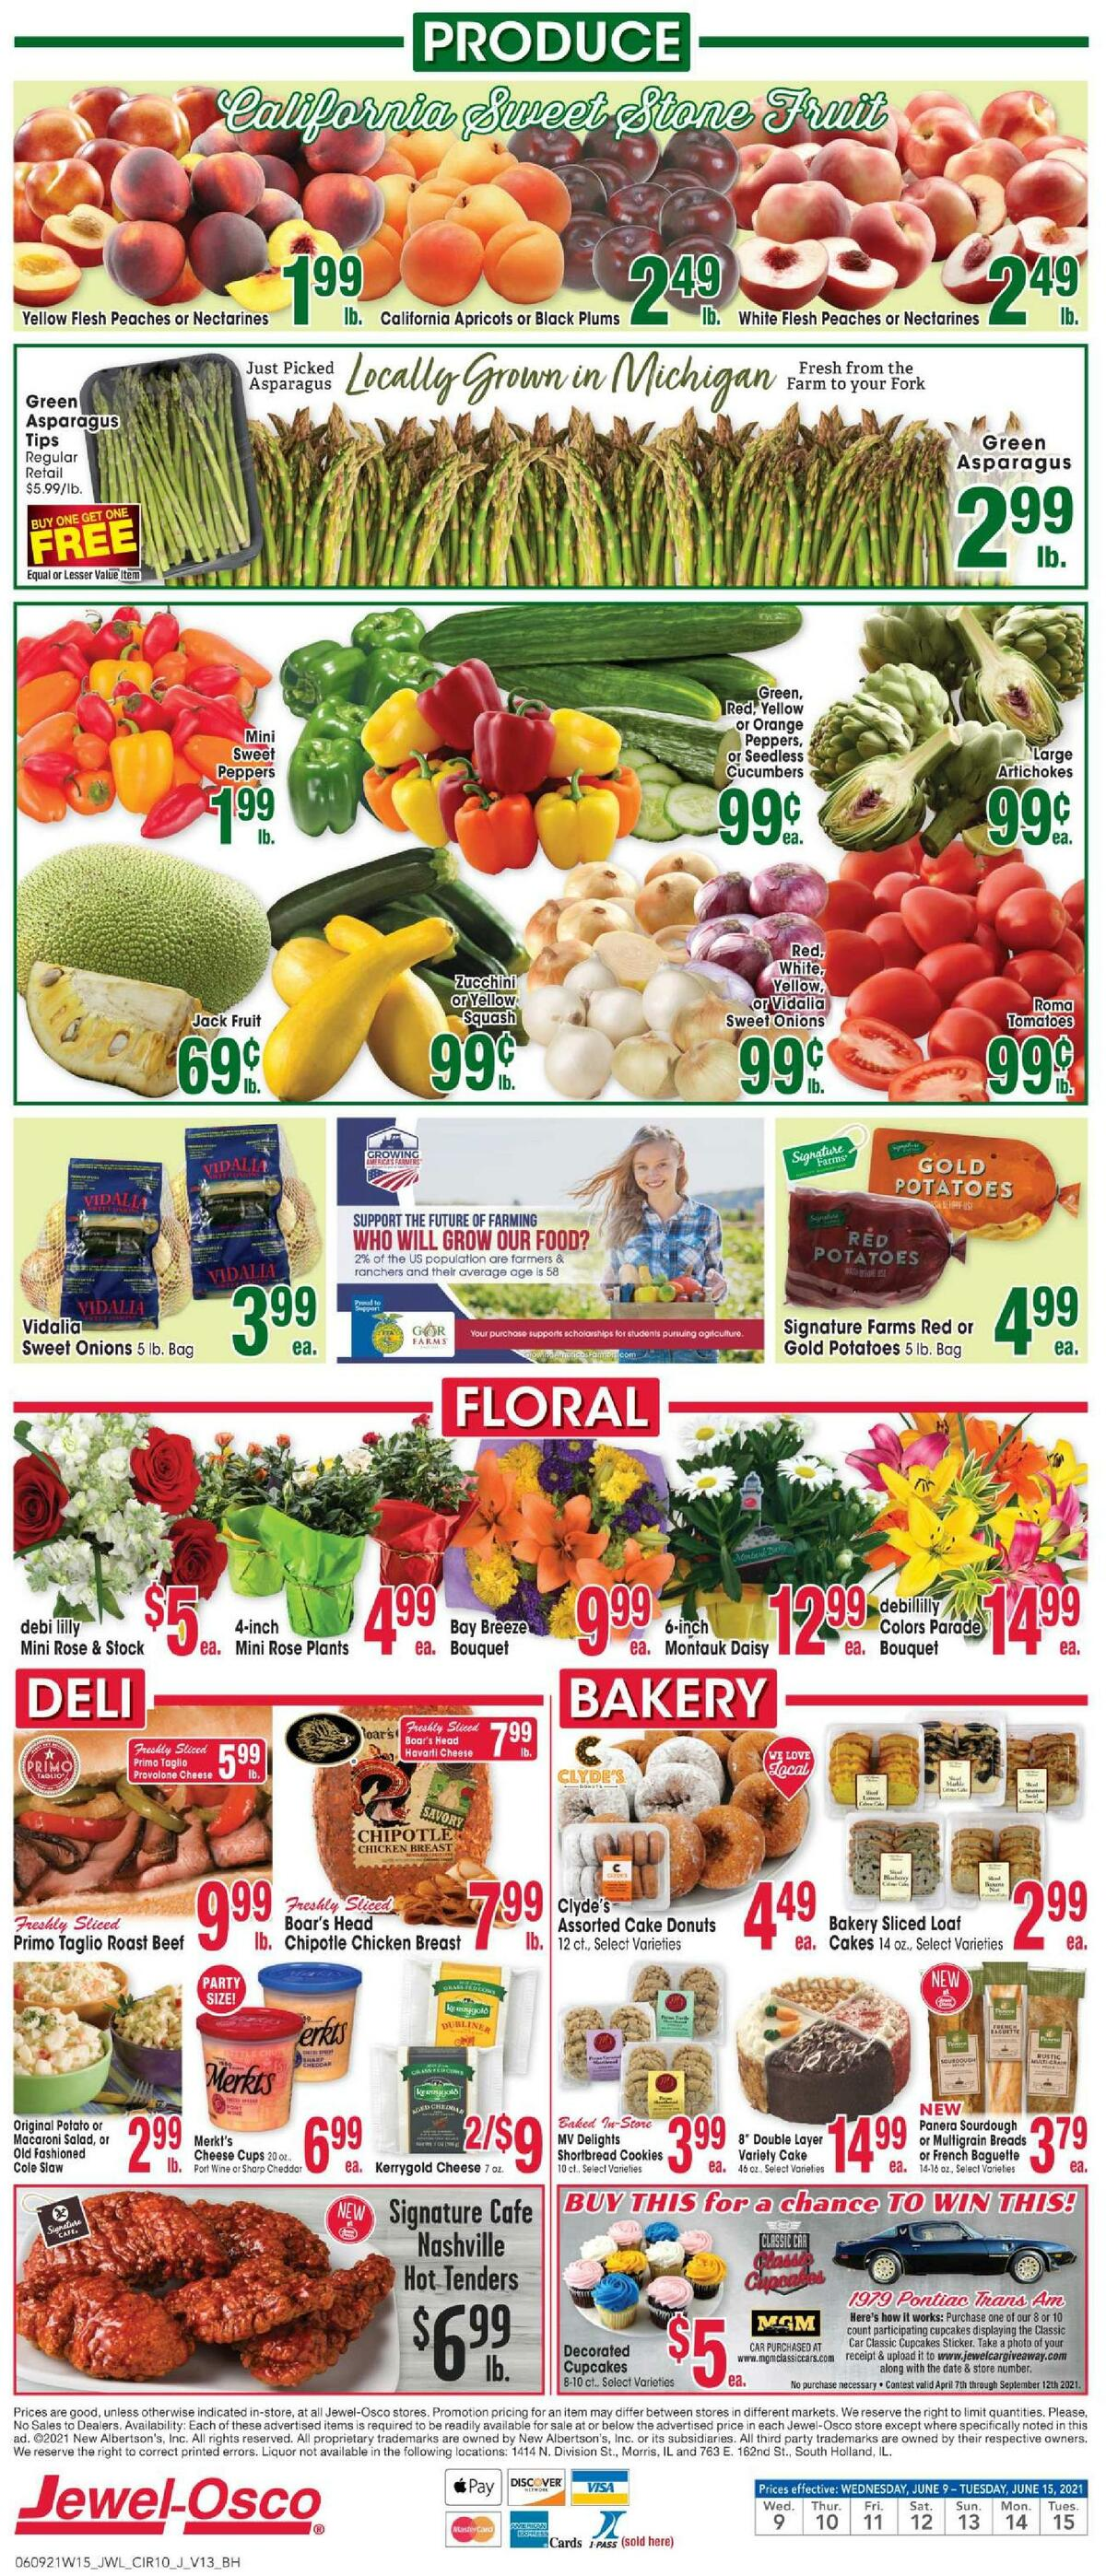 Jewel Osco Weekly Ad from June 9